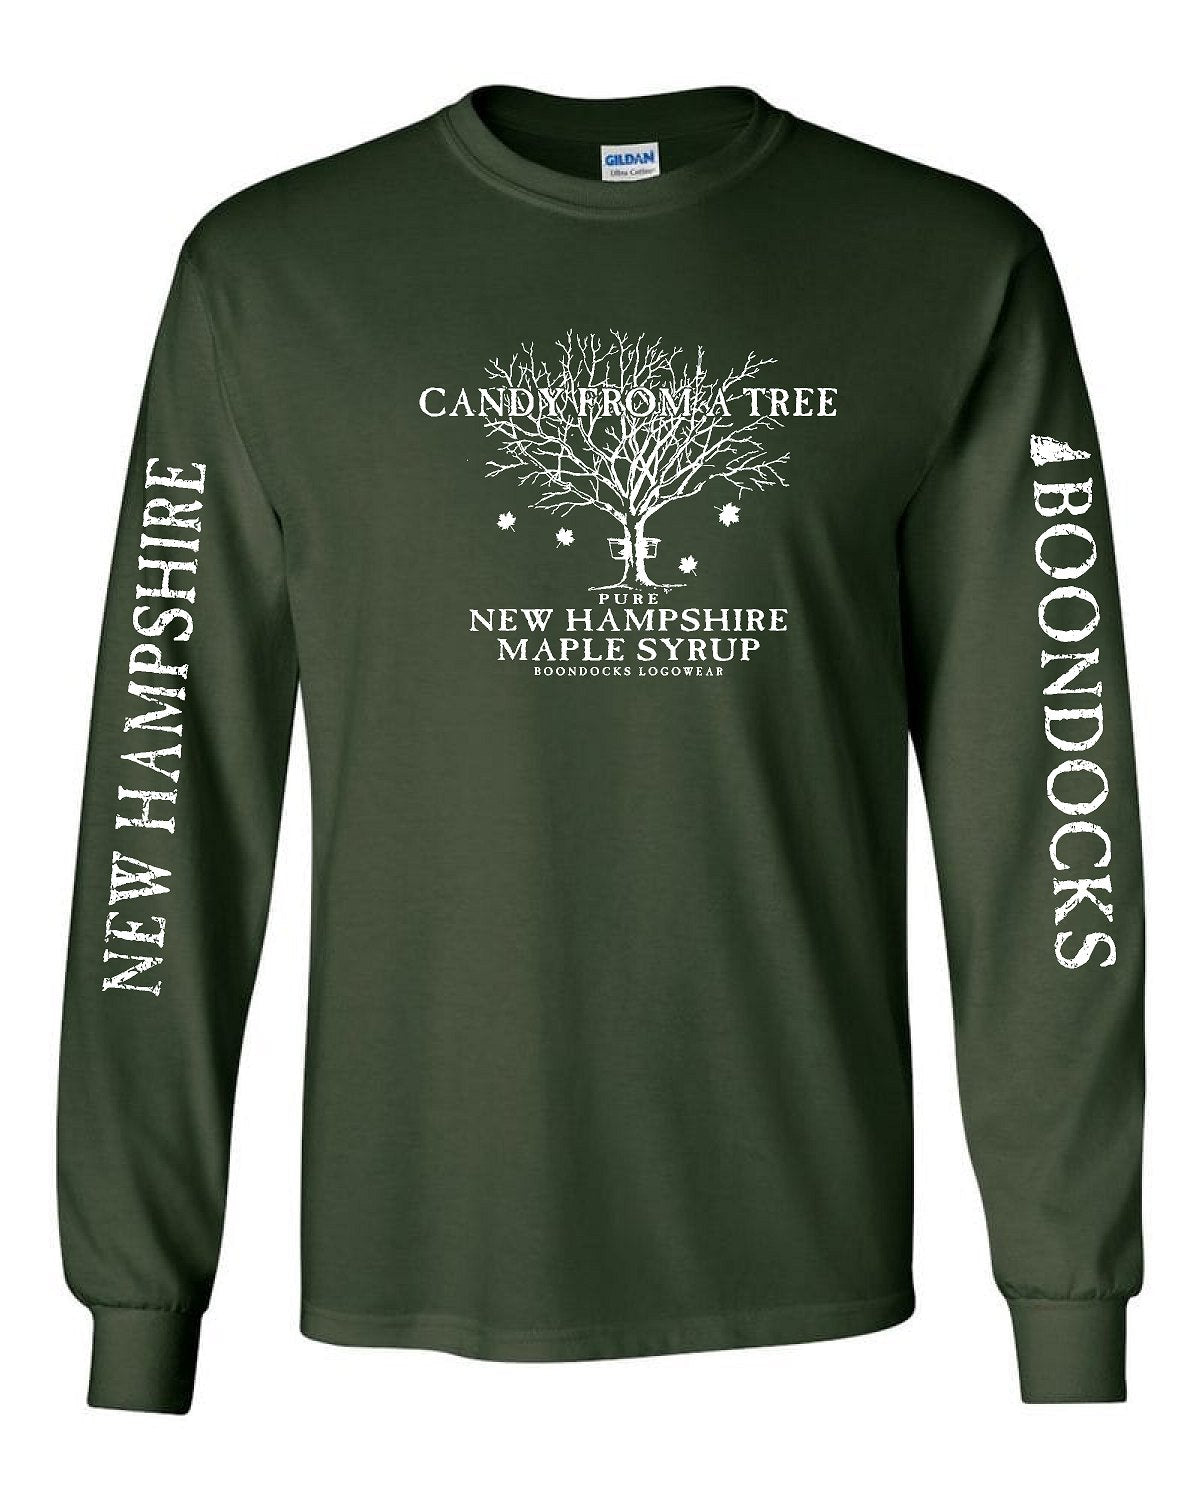 CANDY FROM A TREE • NEW HAMPSHIRE Long Sleeve T-Shirt • Distressed print NEW HAMPSHIRE & Boondocks on the sleeves